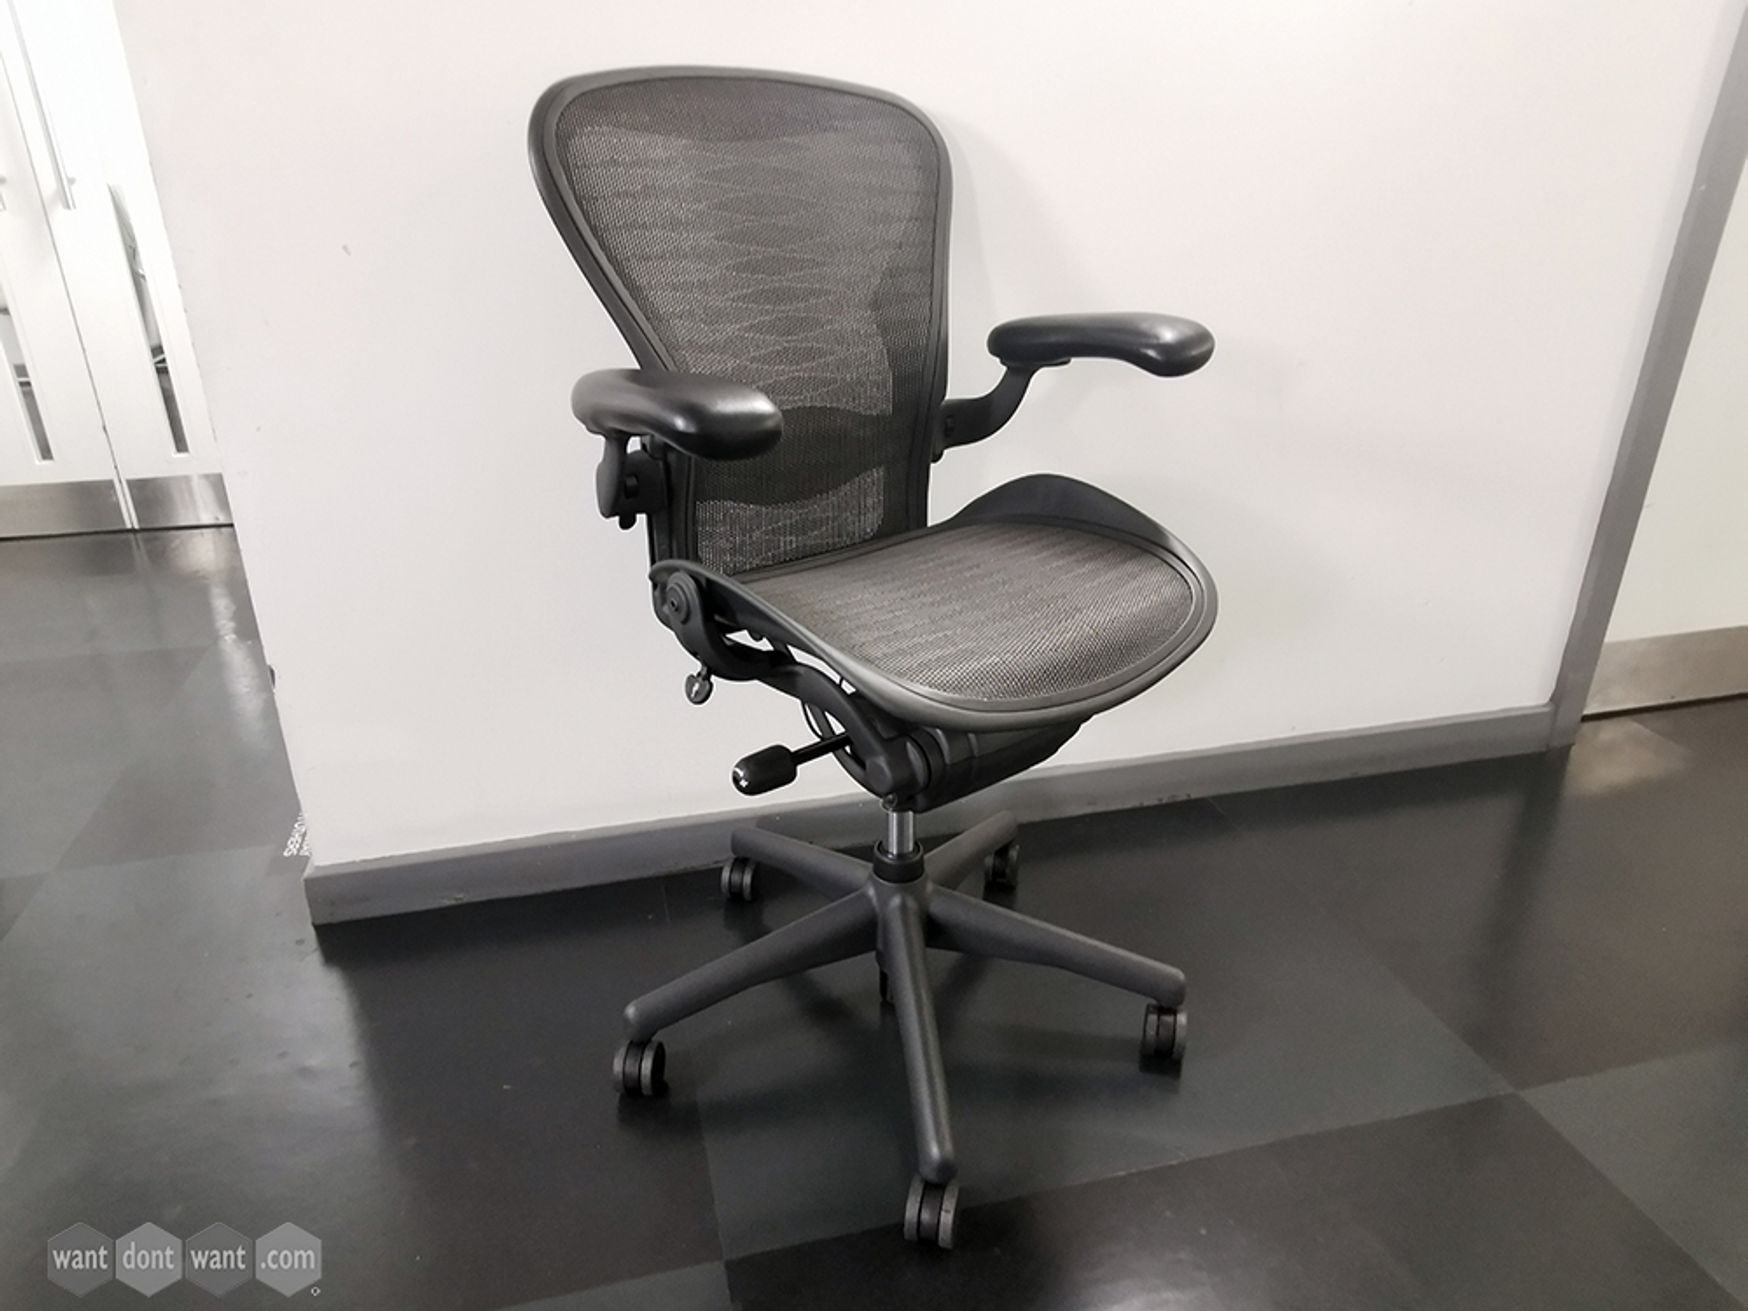 Used Size B Herman Miller Aeron Chairs with Tuxedo Mesh Full Spec with Lumbar Support